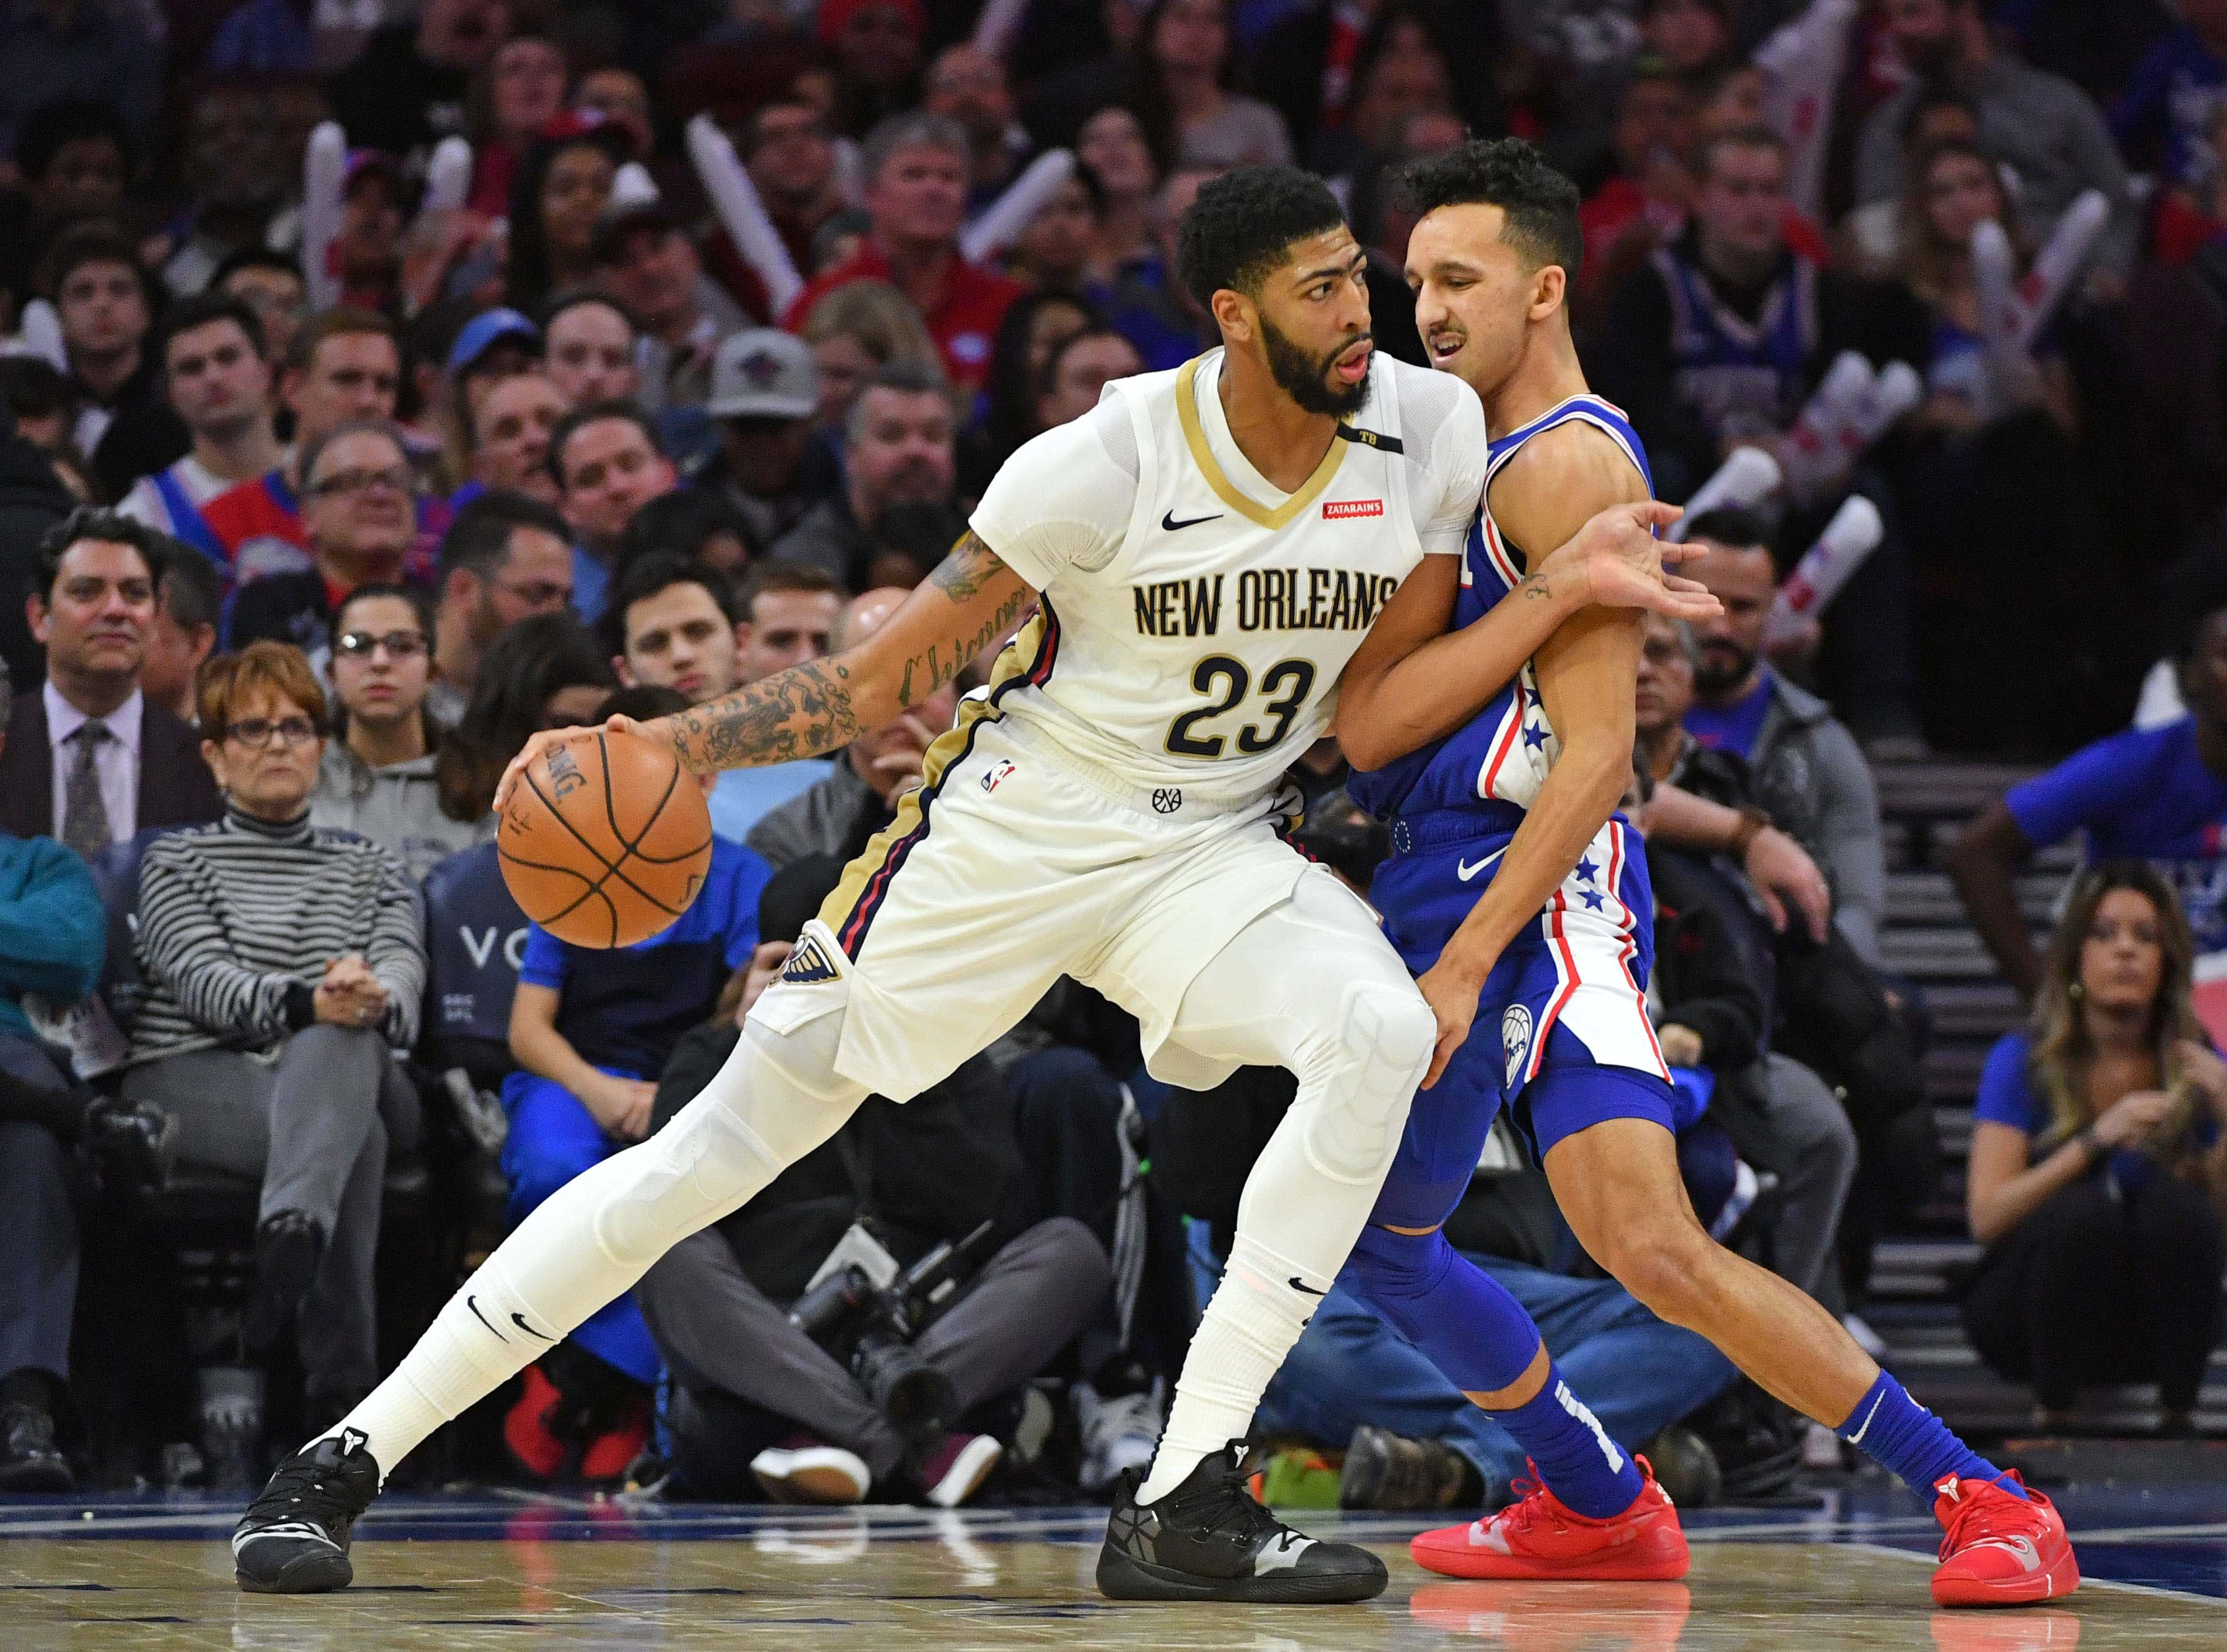 New Orleans Pelicans Anthony Davis drops rare 5x5 game